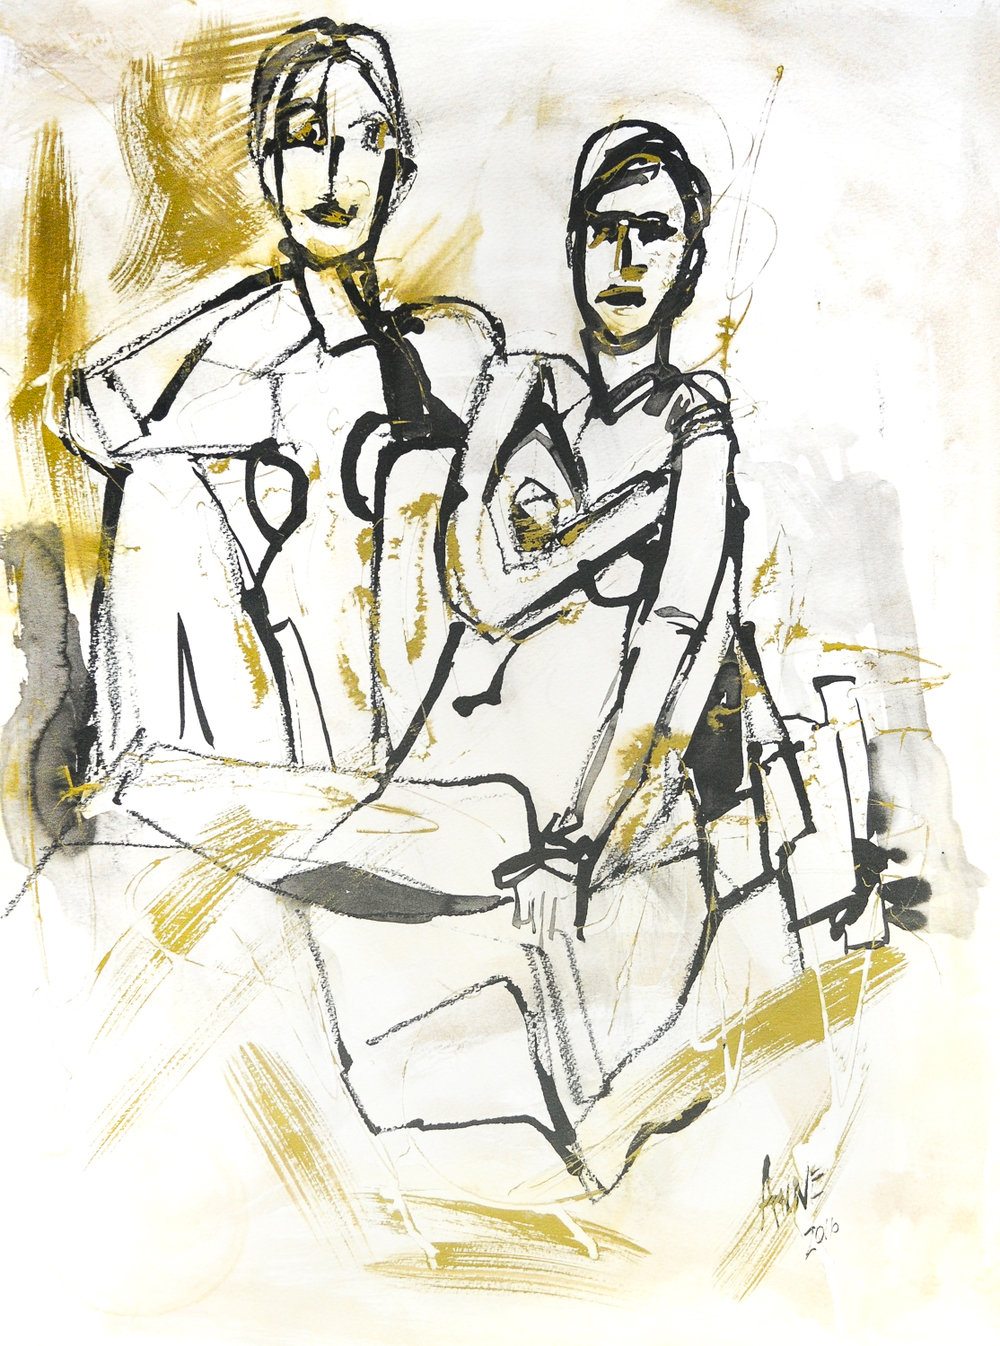 Seated Figures in Ink & Gold | Ink & Gold Acrylic on Paper | 18 x 24""